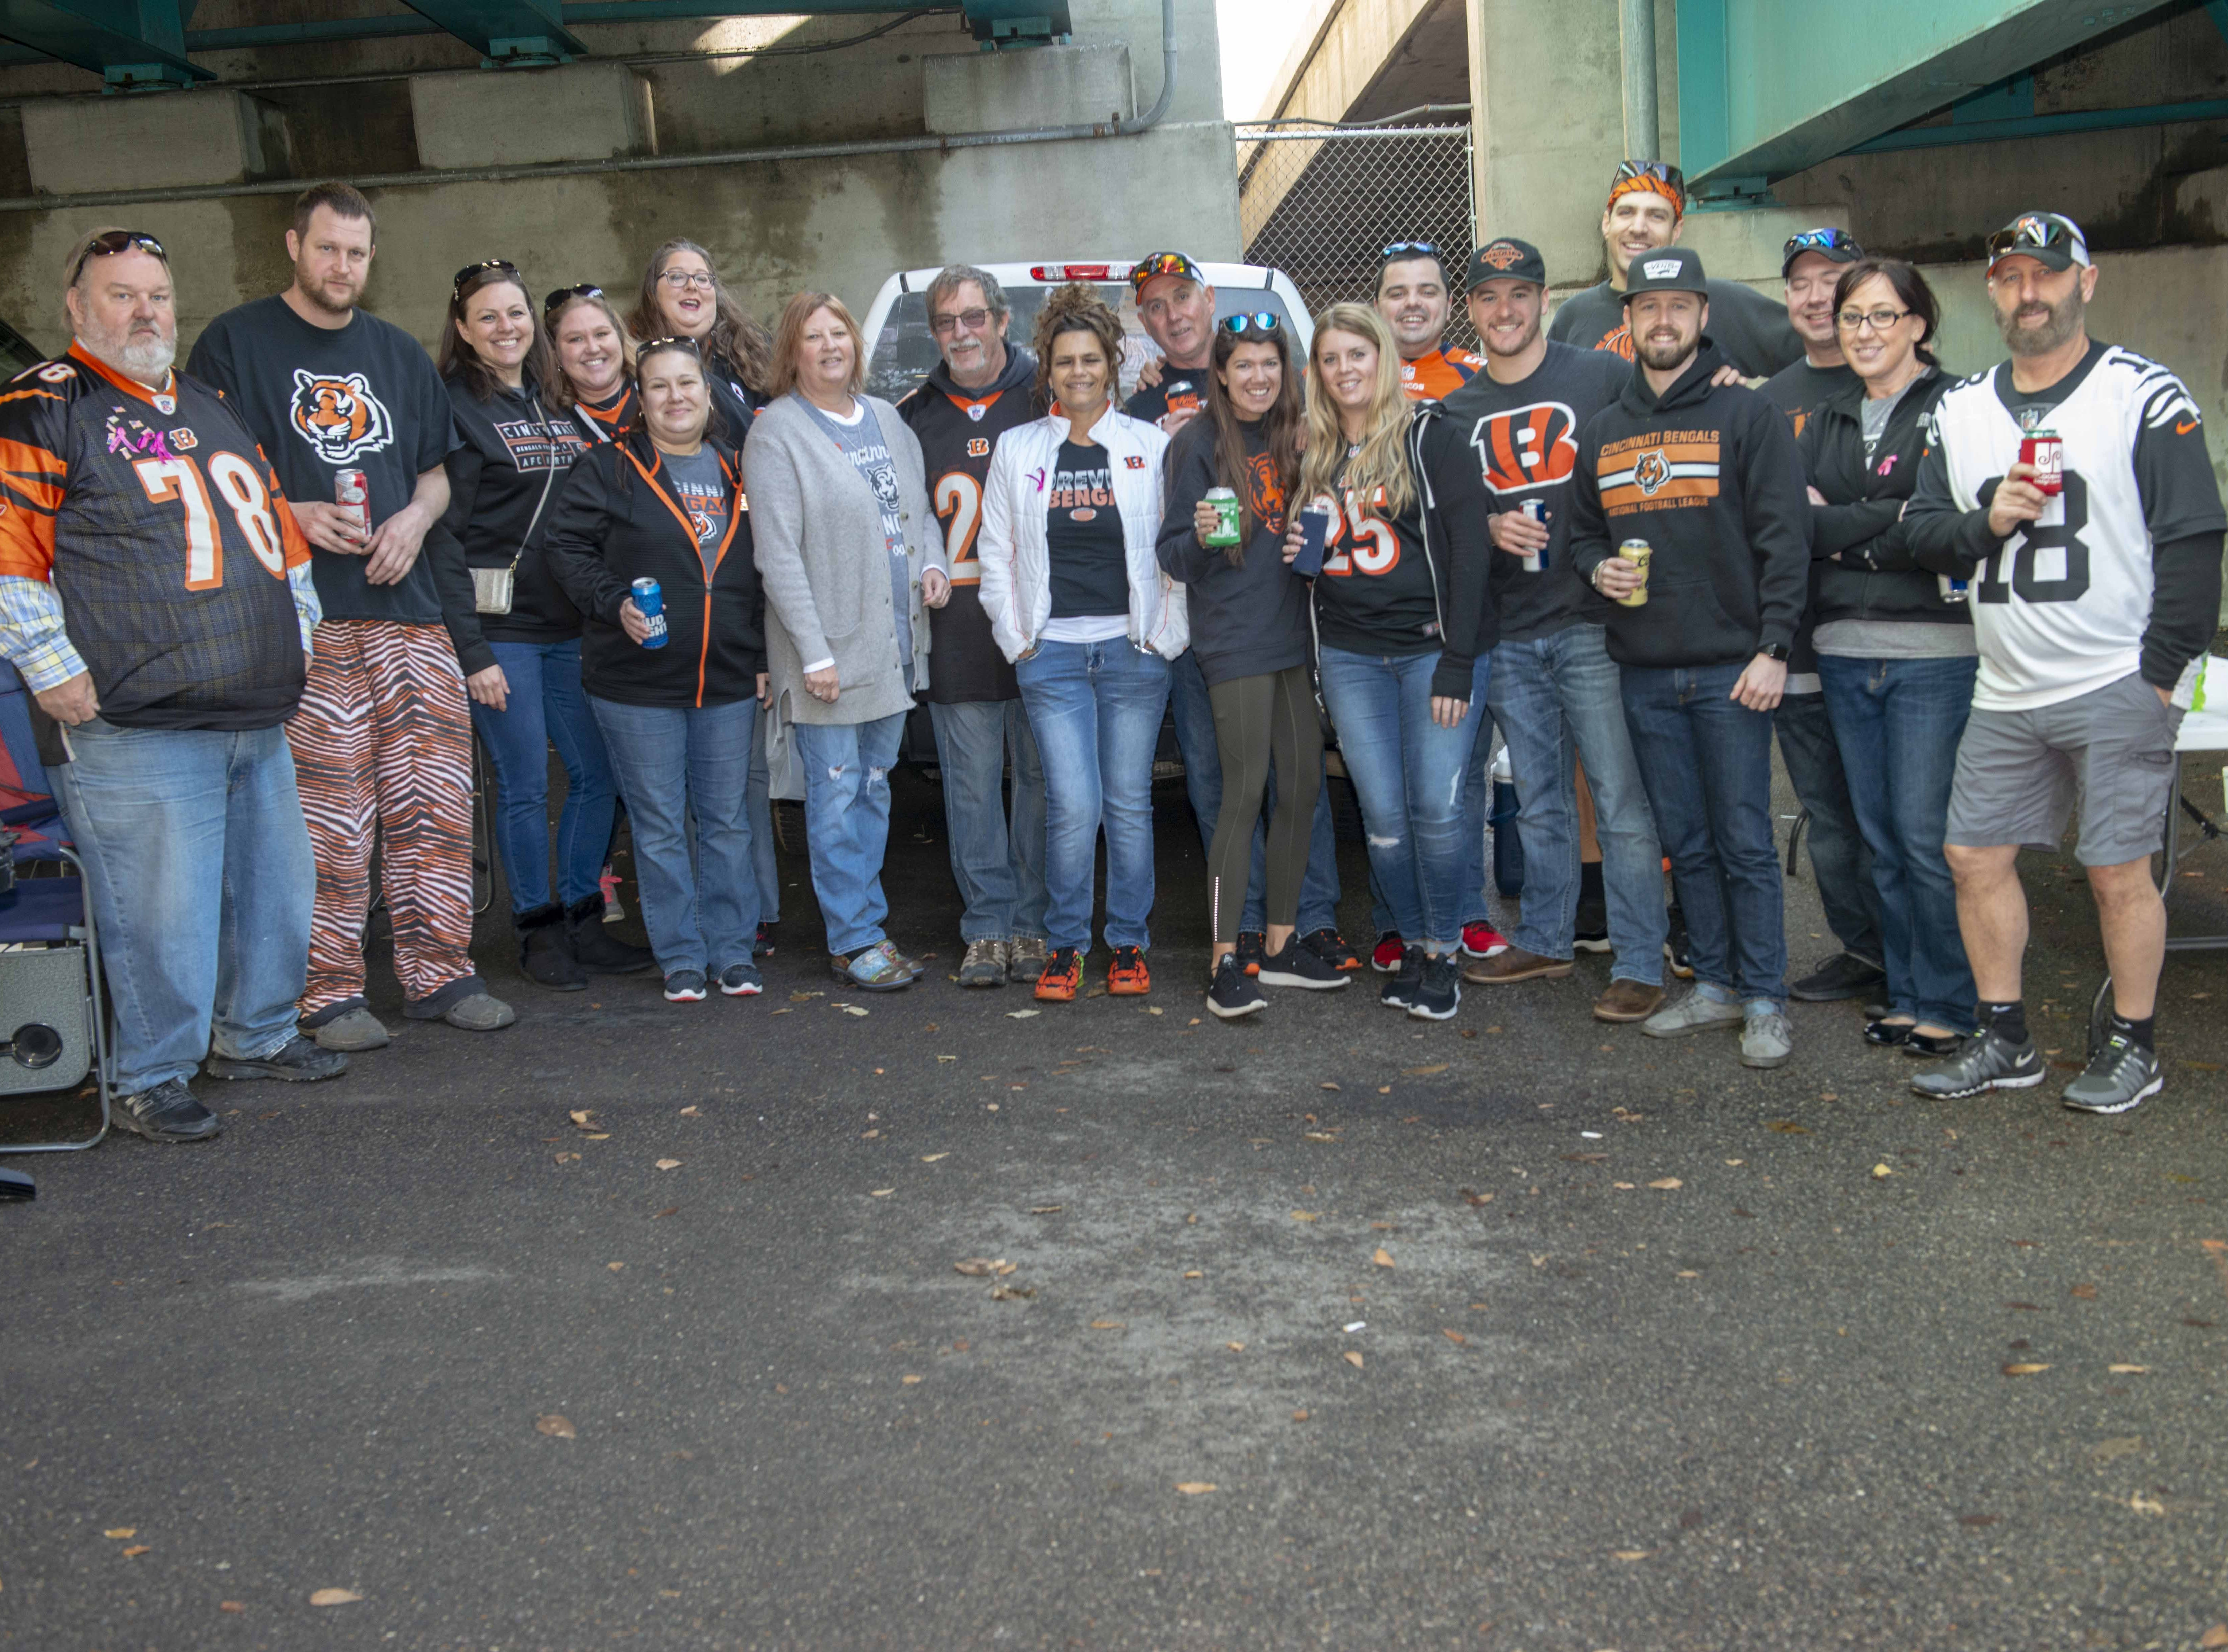 Cincinnati Bengals fans showed up for tailgating parties as the Cincinnati Bengals hosted the Denver Broncos at Paul Brown Stadium Sunday, December 2, 2018. The Ronnie Brock Group of Norwood.